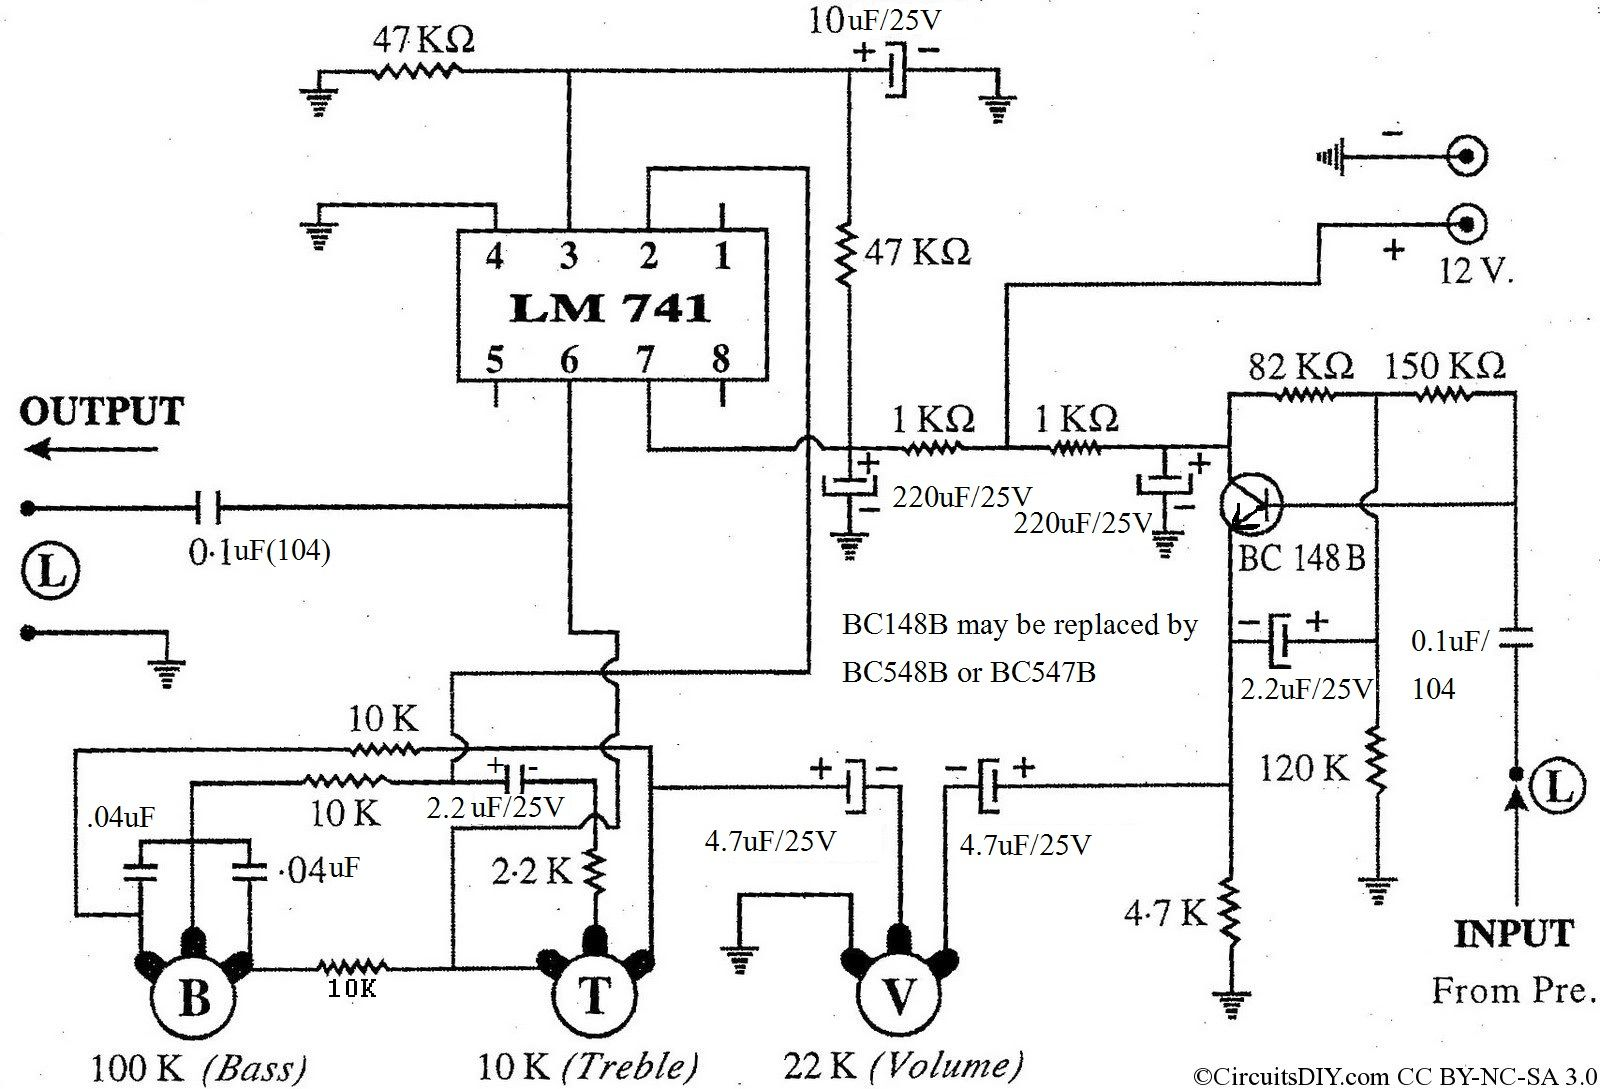 medium resolution of a large online repository or library of guitar pedal schematics layouts pcb transfers and tagboard layouts all rights reserved to respective owner s